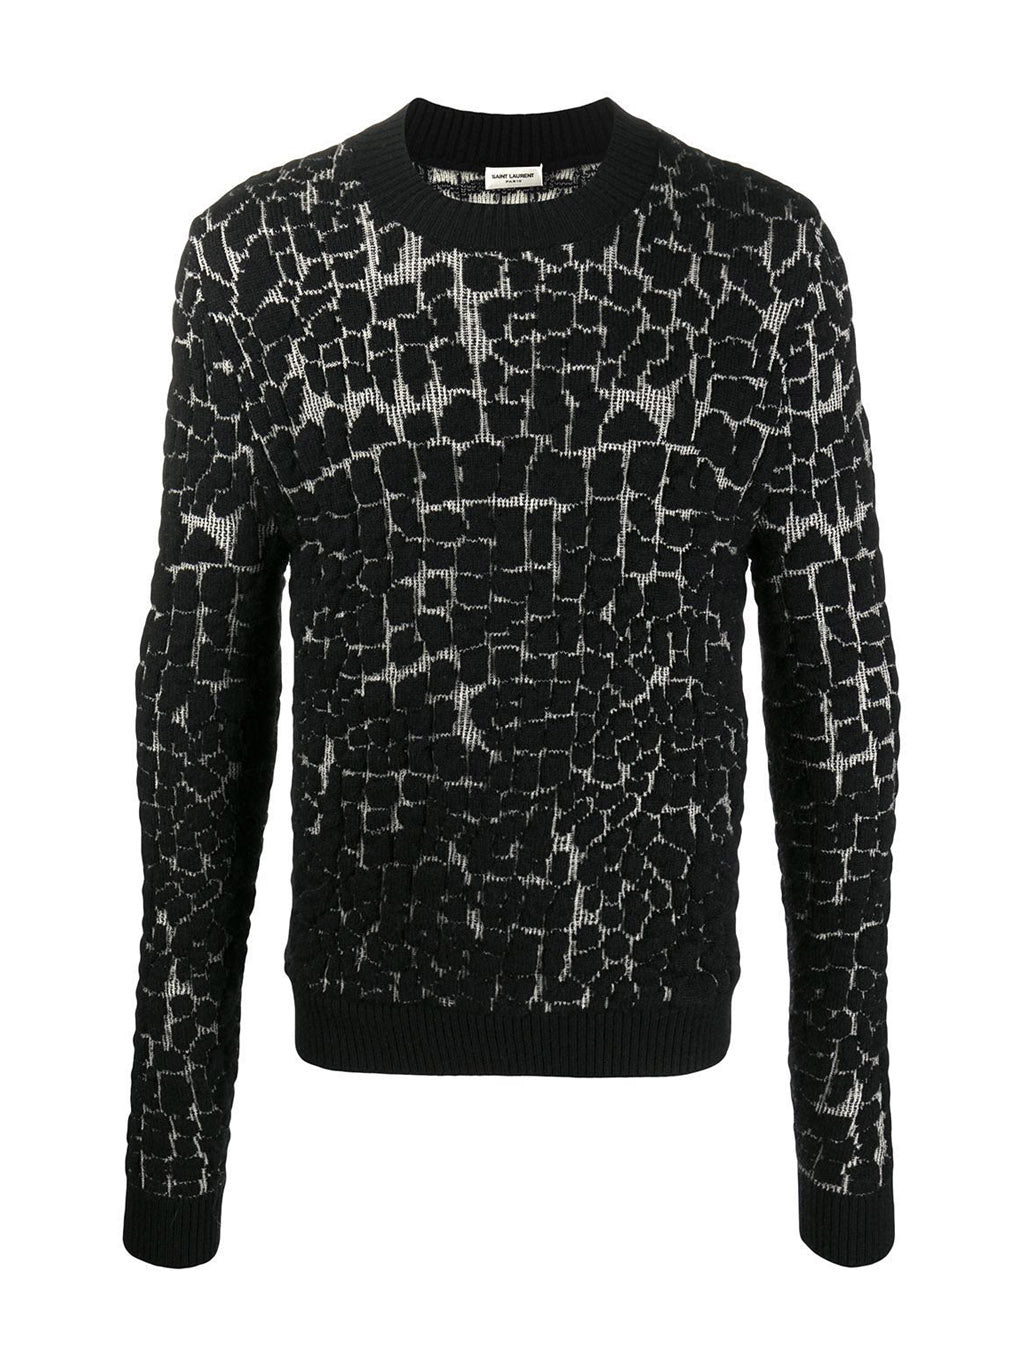 Black Animal Print Pull Over Sweater